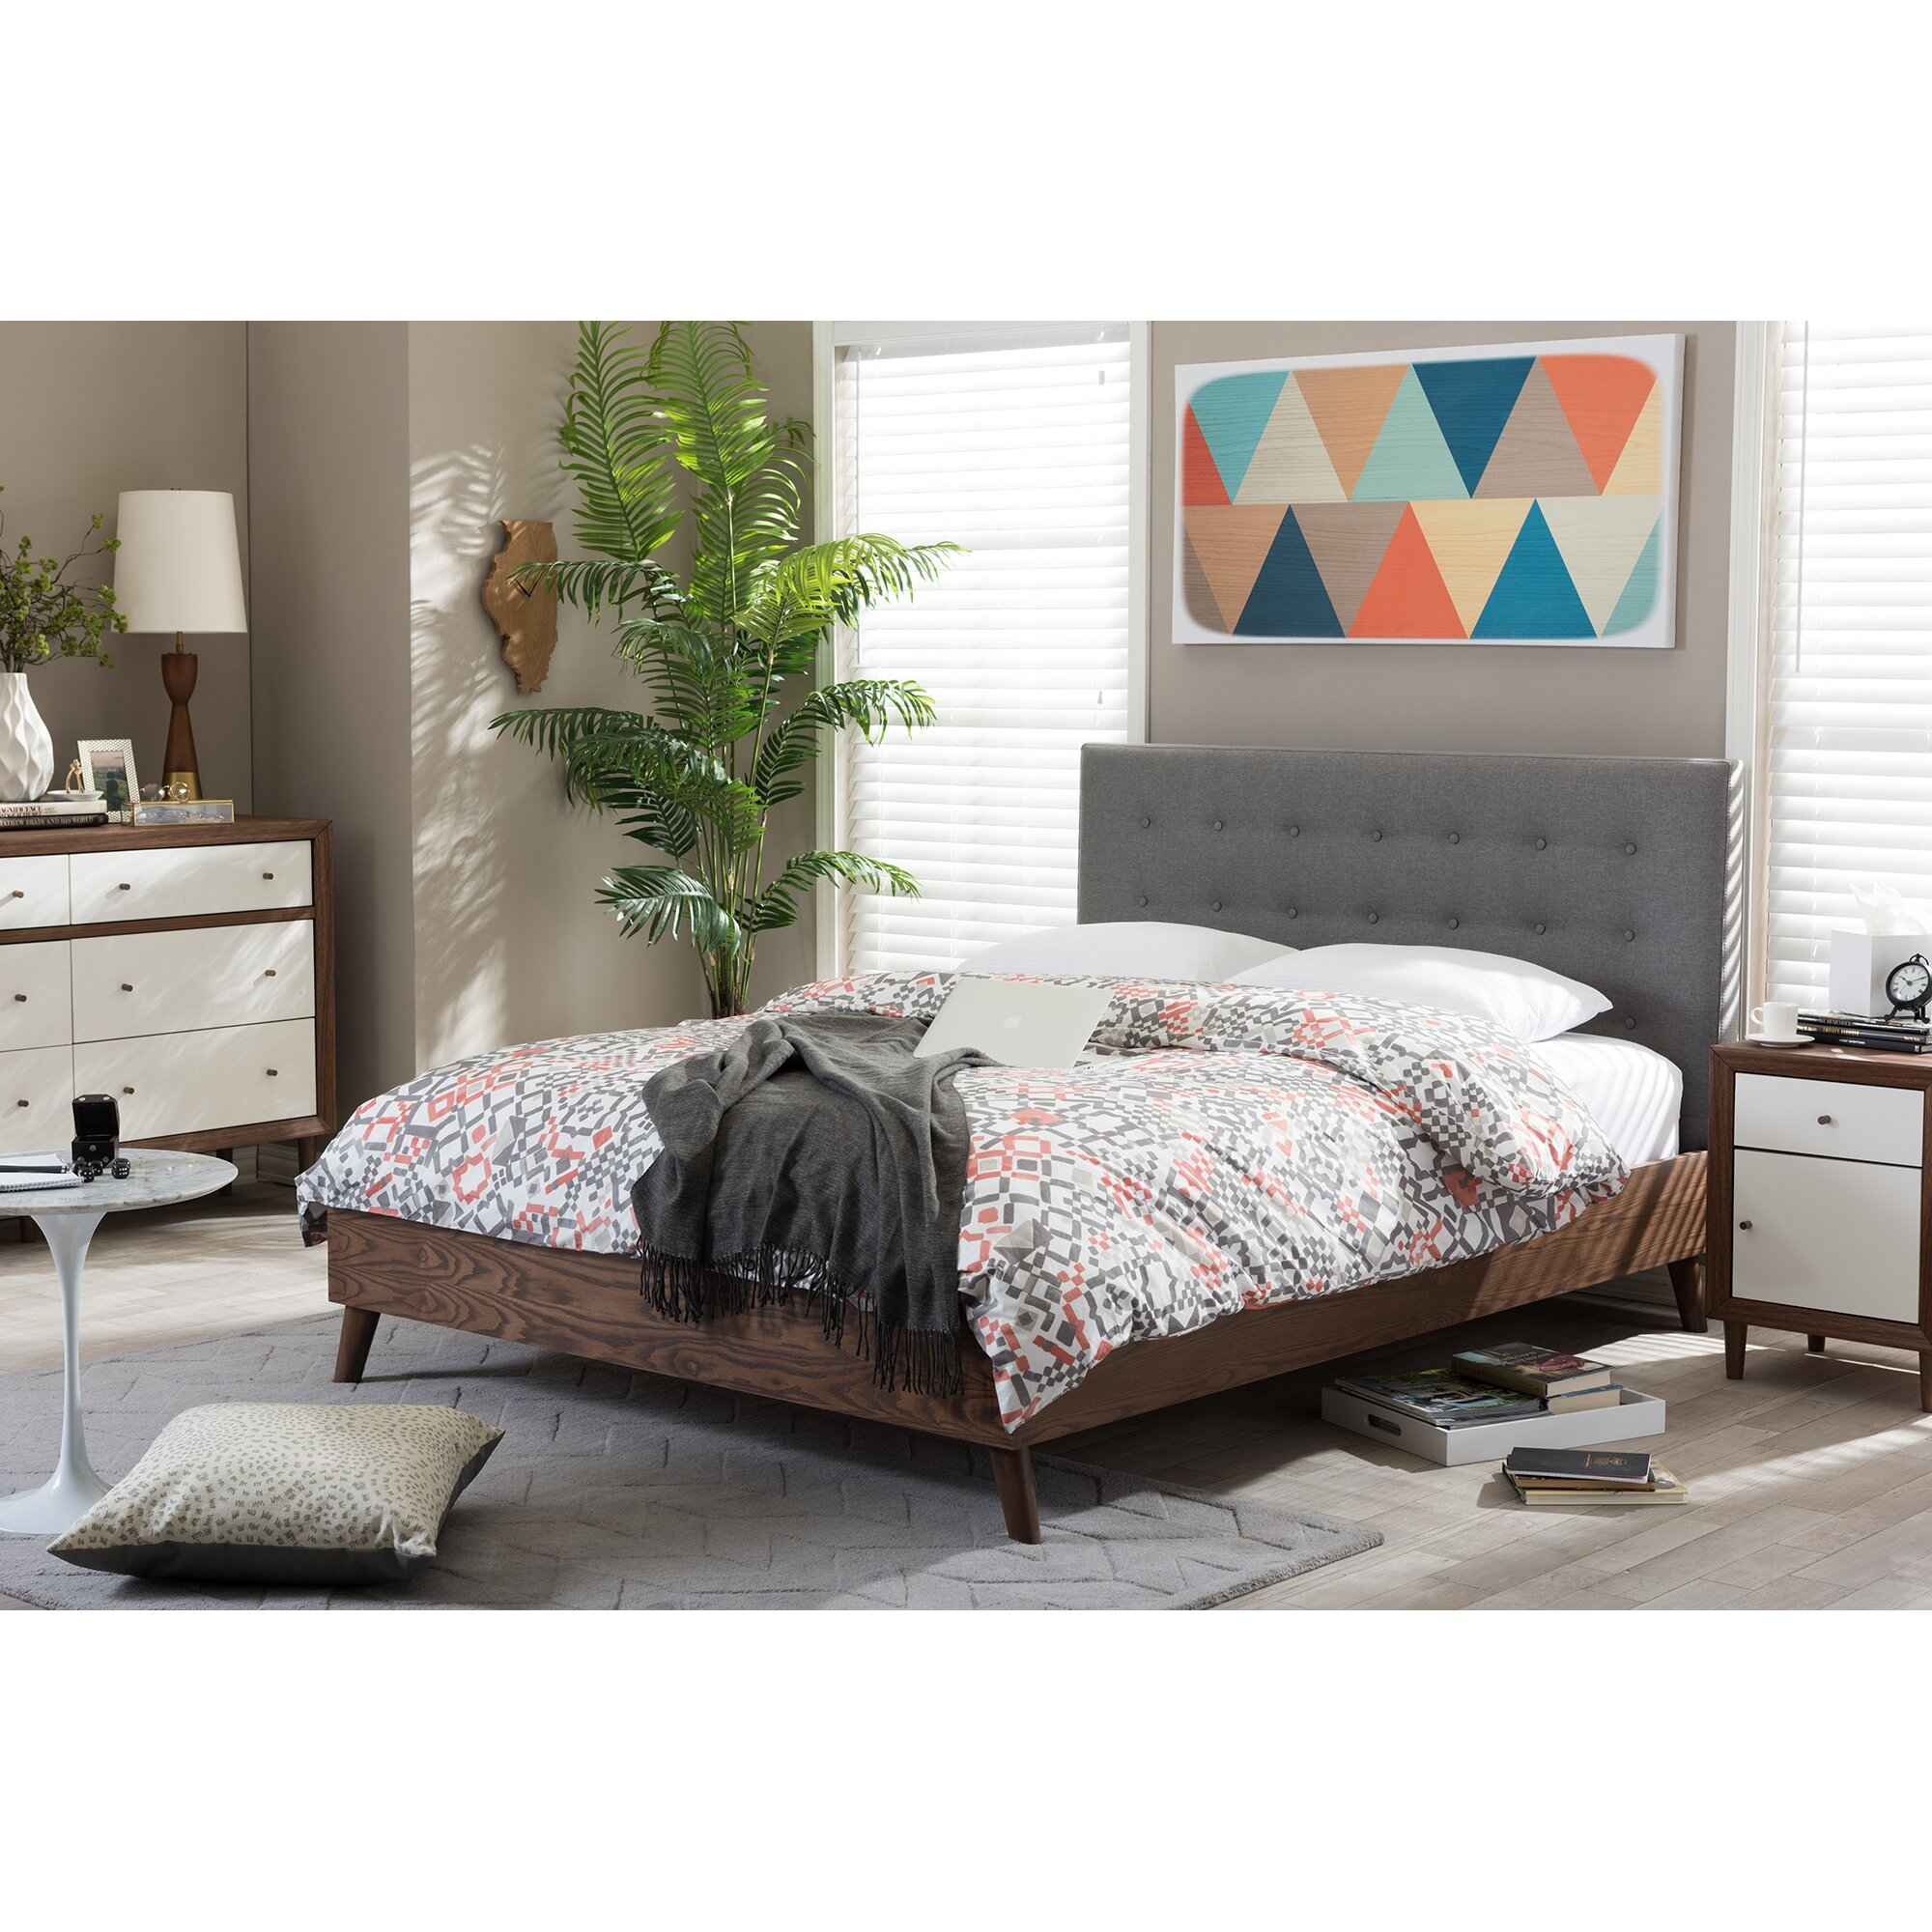 Modenr Studio Plaform Bed Frme Twin